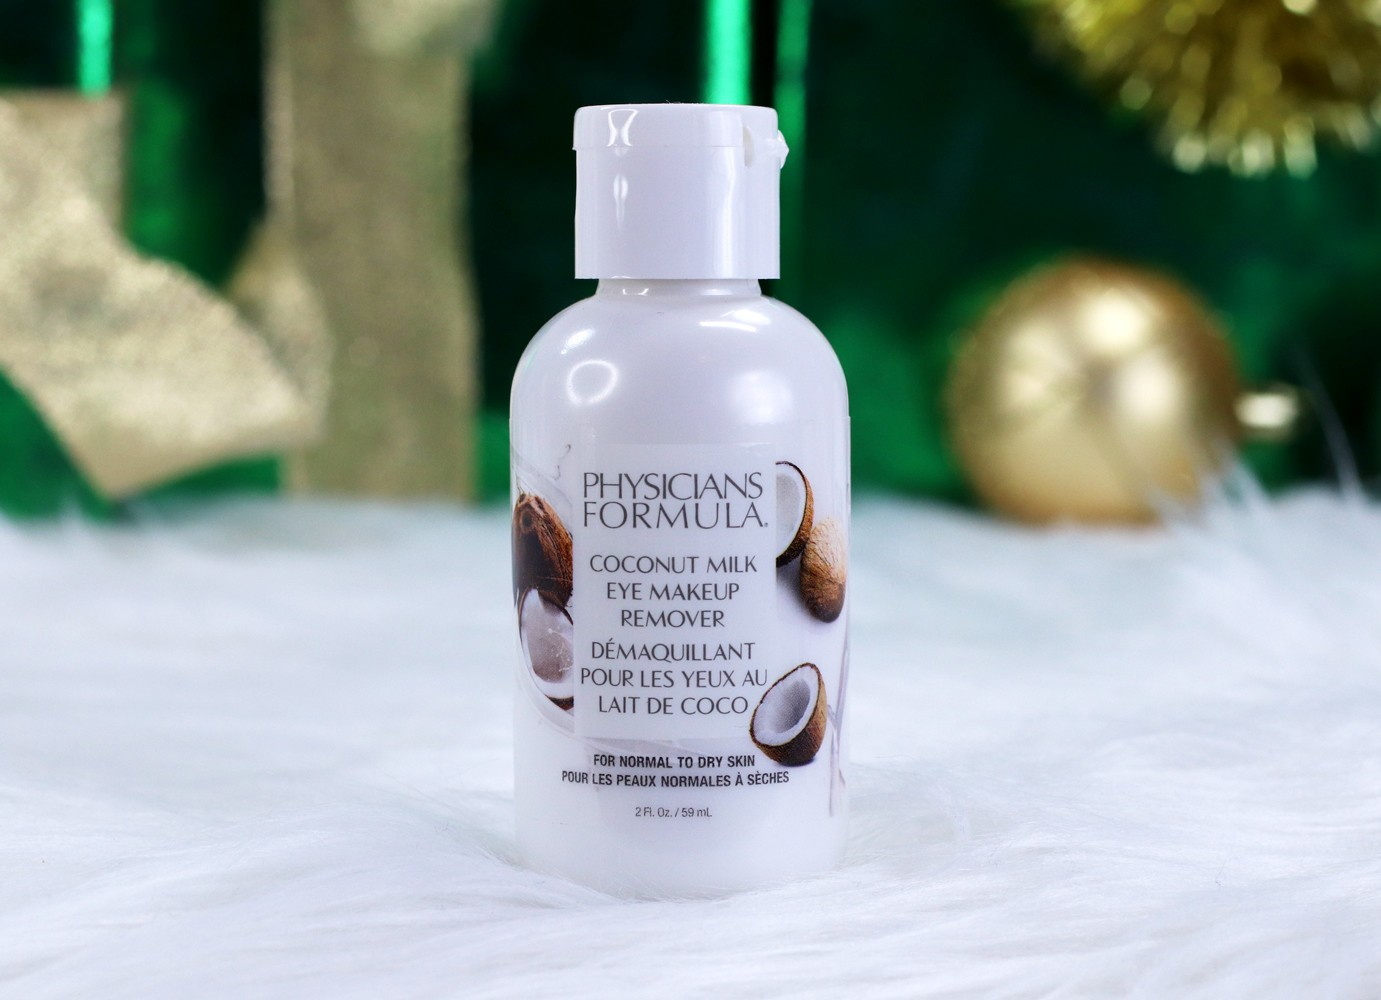 Physicians Formula Coconut Milk Eye Makeup Remover Review